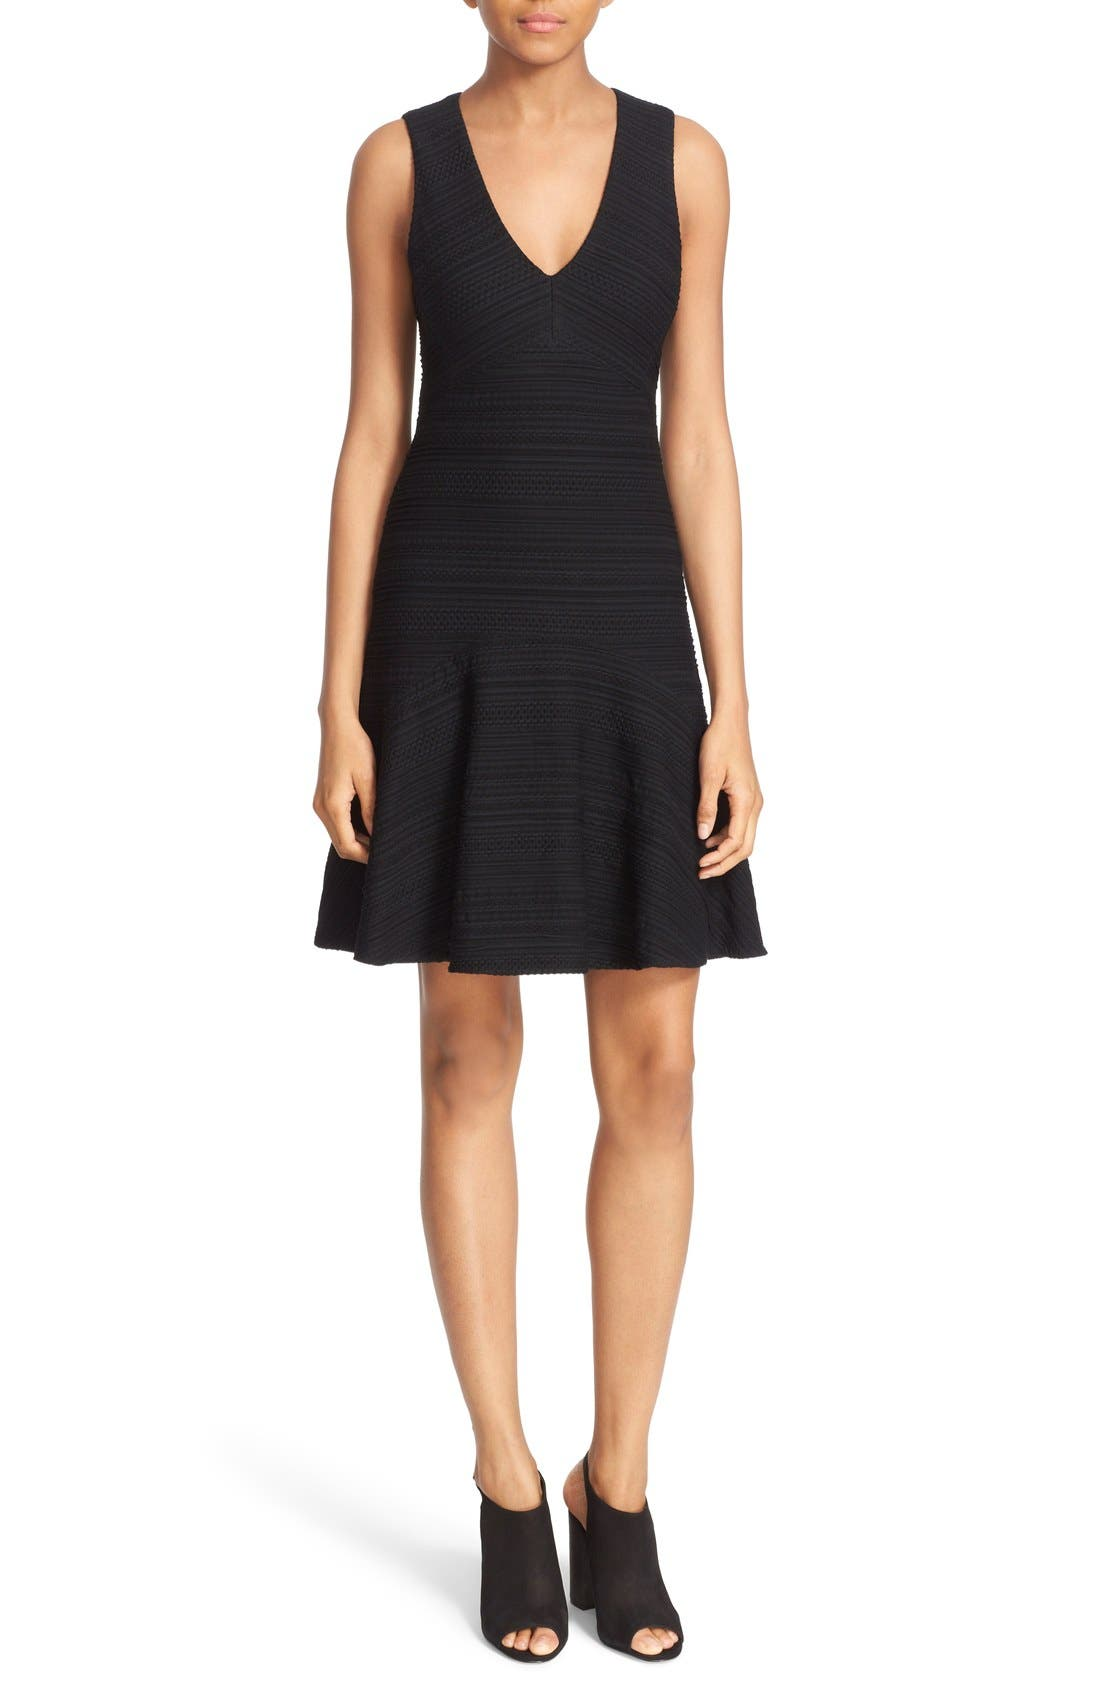 REBECCA TAYLOR, Sleeveless V-Neck Texture Knit Fit & Flare Dress, Main thumbnail 1, color, 001